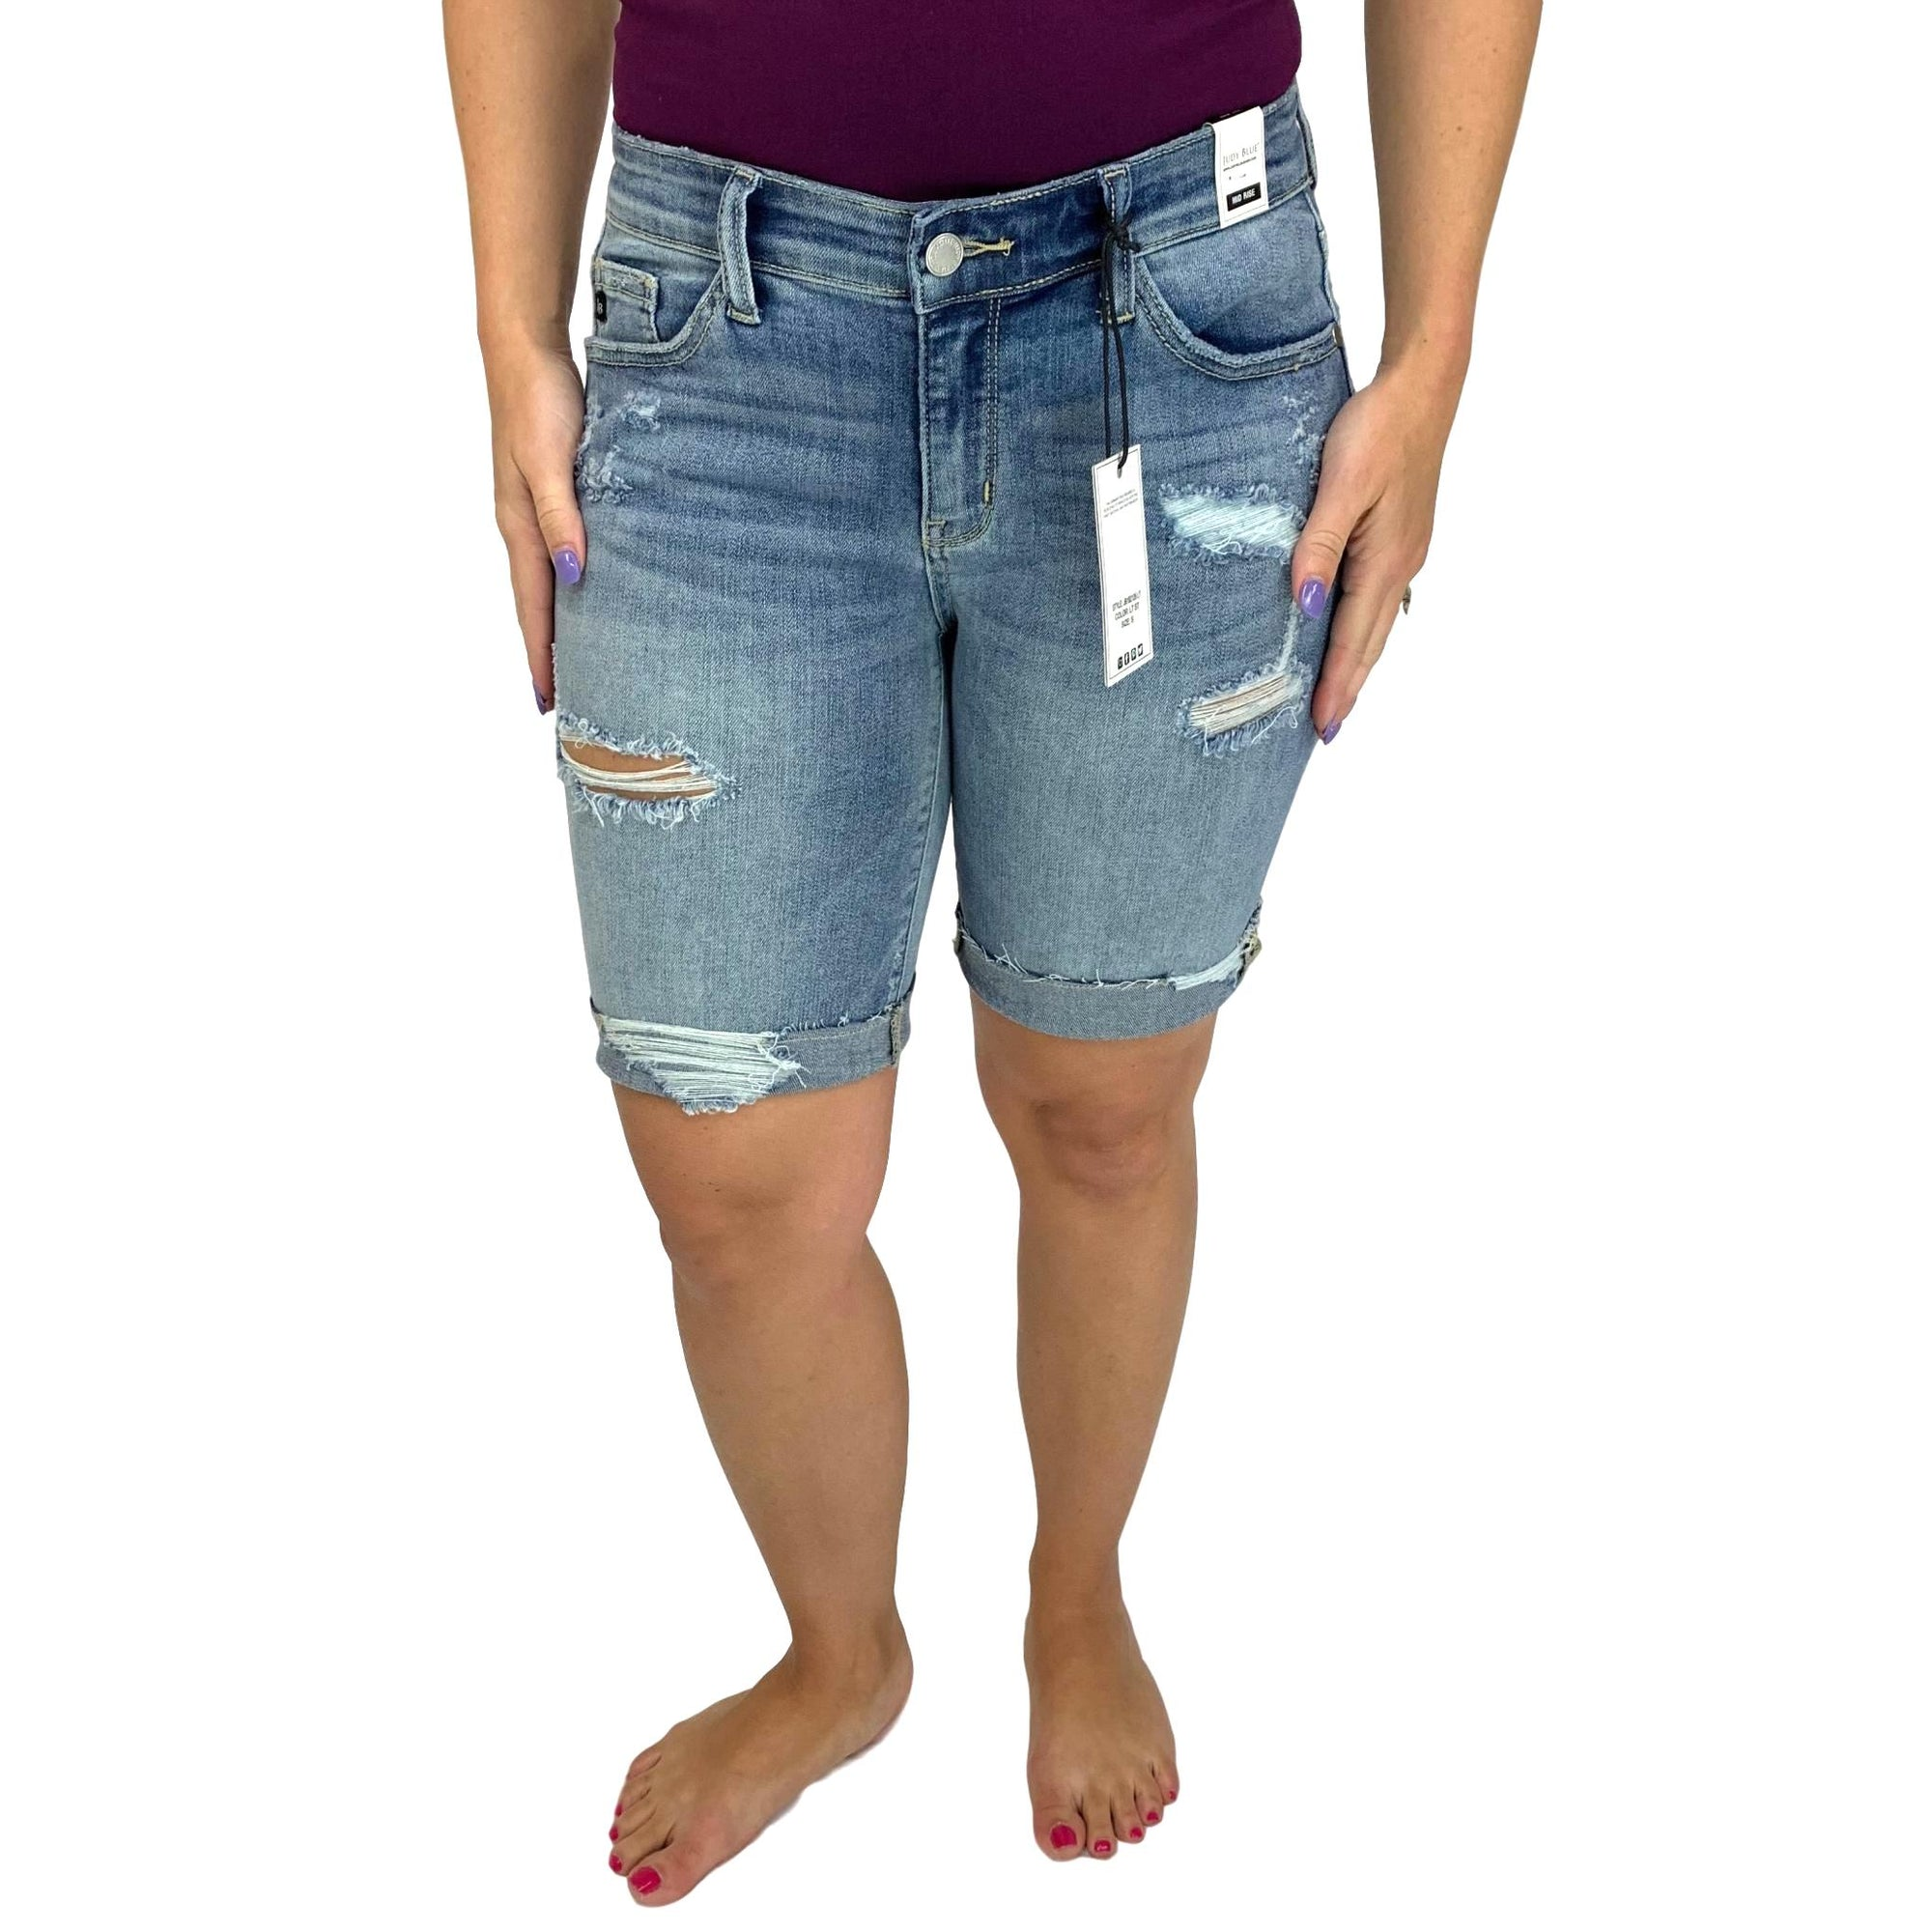 Judy Blue Destroyed Bermuda Jean Shorts